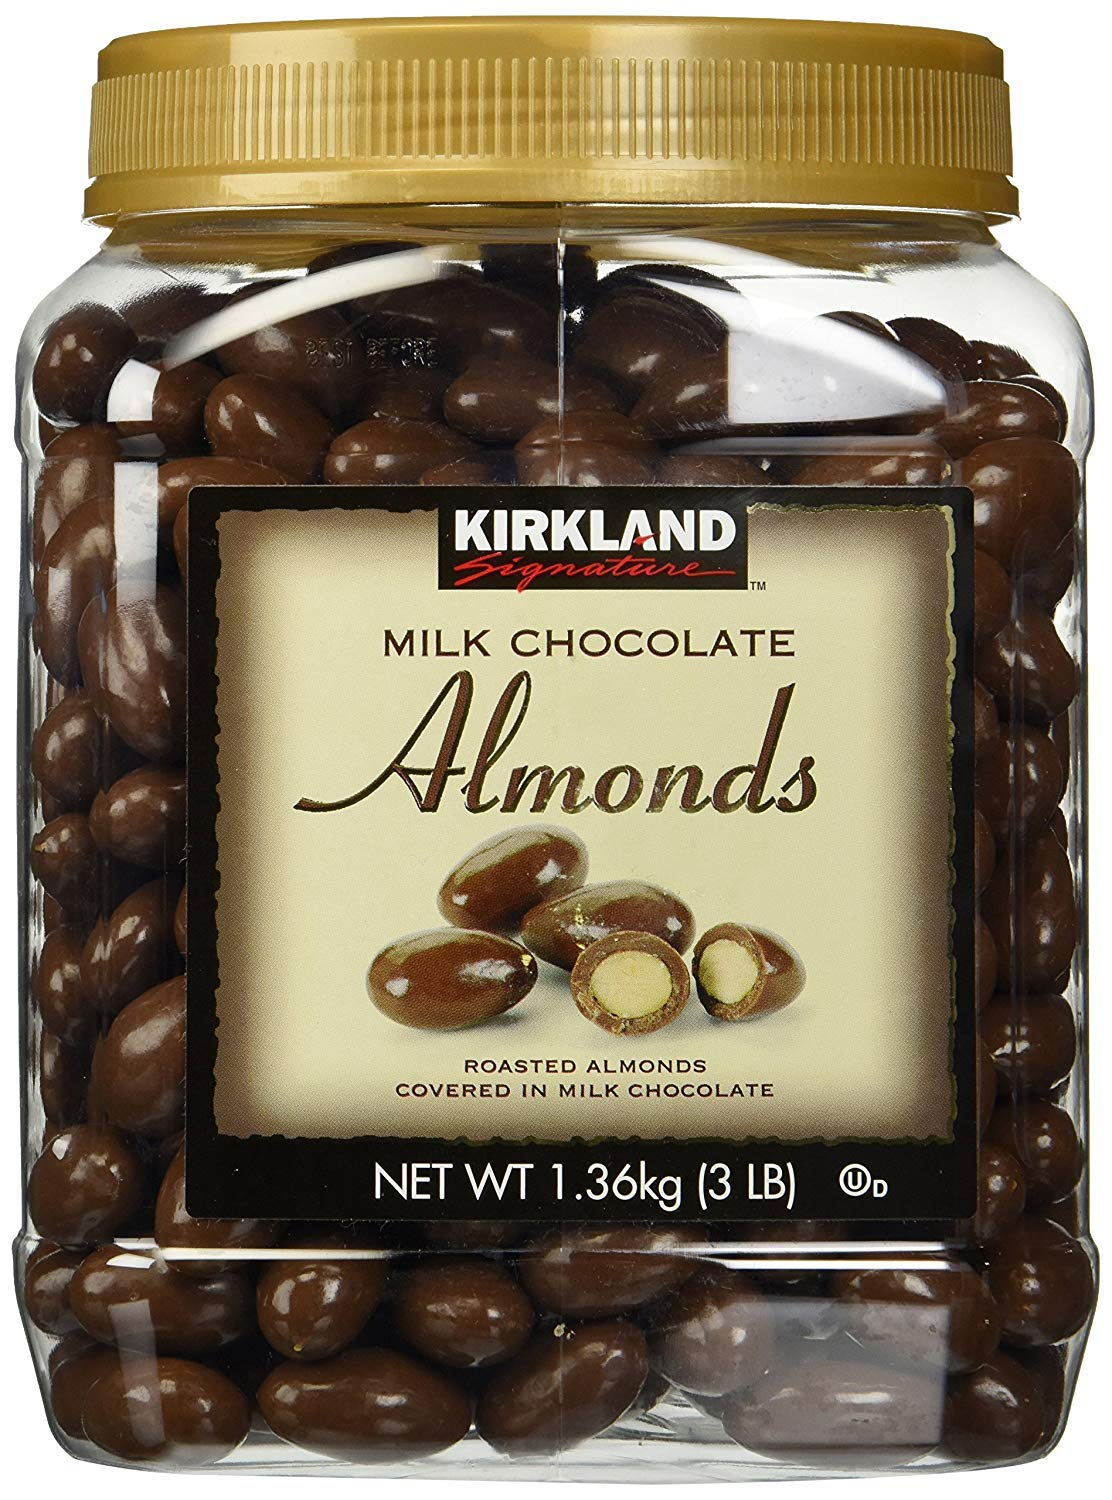 Kirkland Signature Trhfh Milk Chocolate Roasted Almonds, 2 Pack 48 Oz by Kirkland Signature